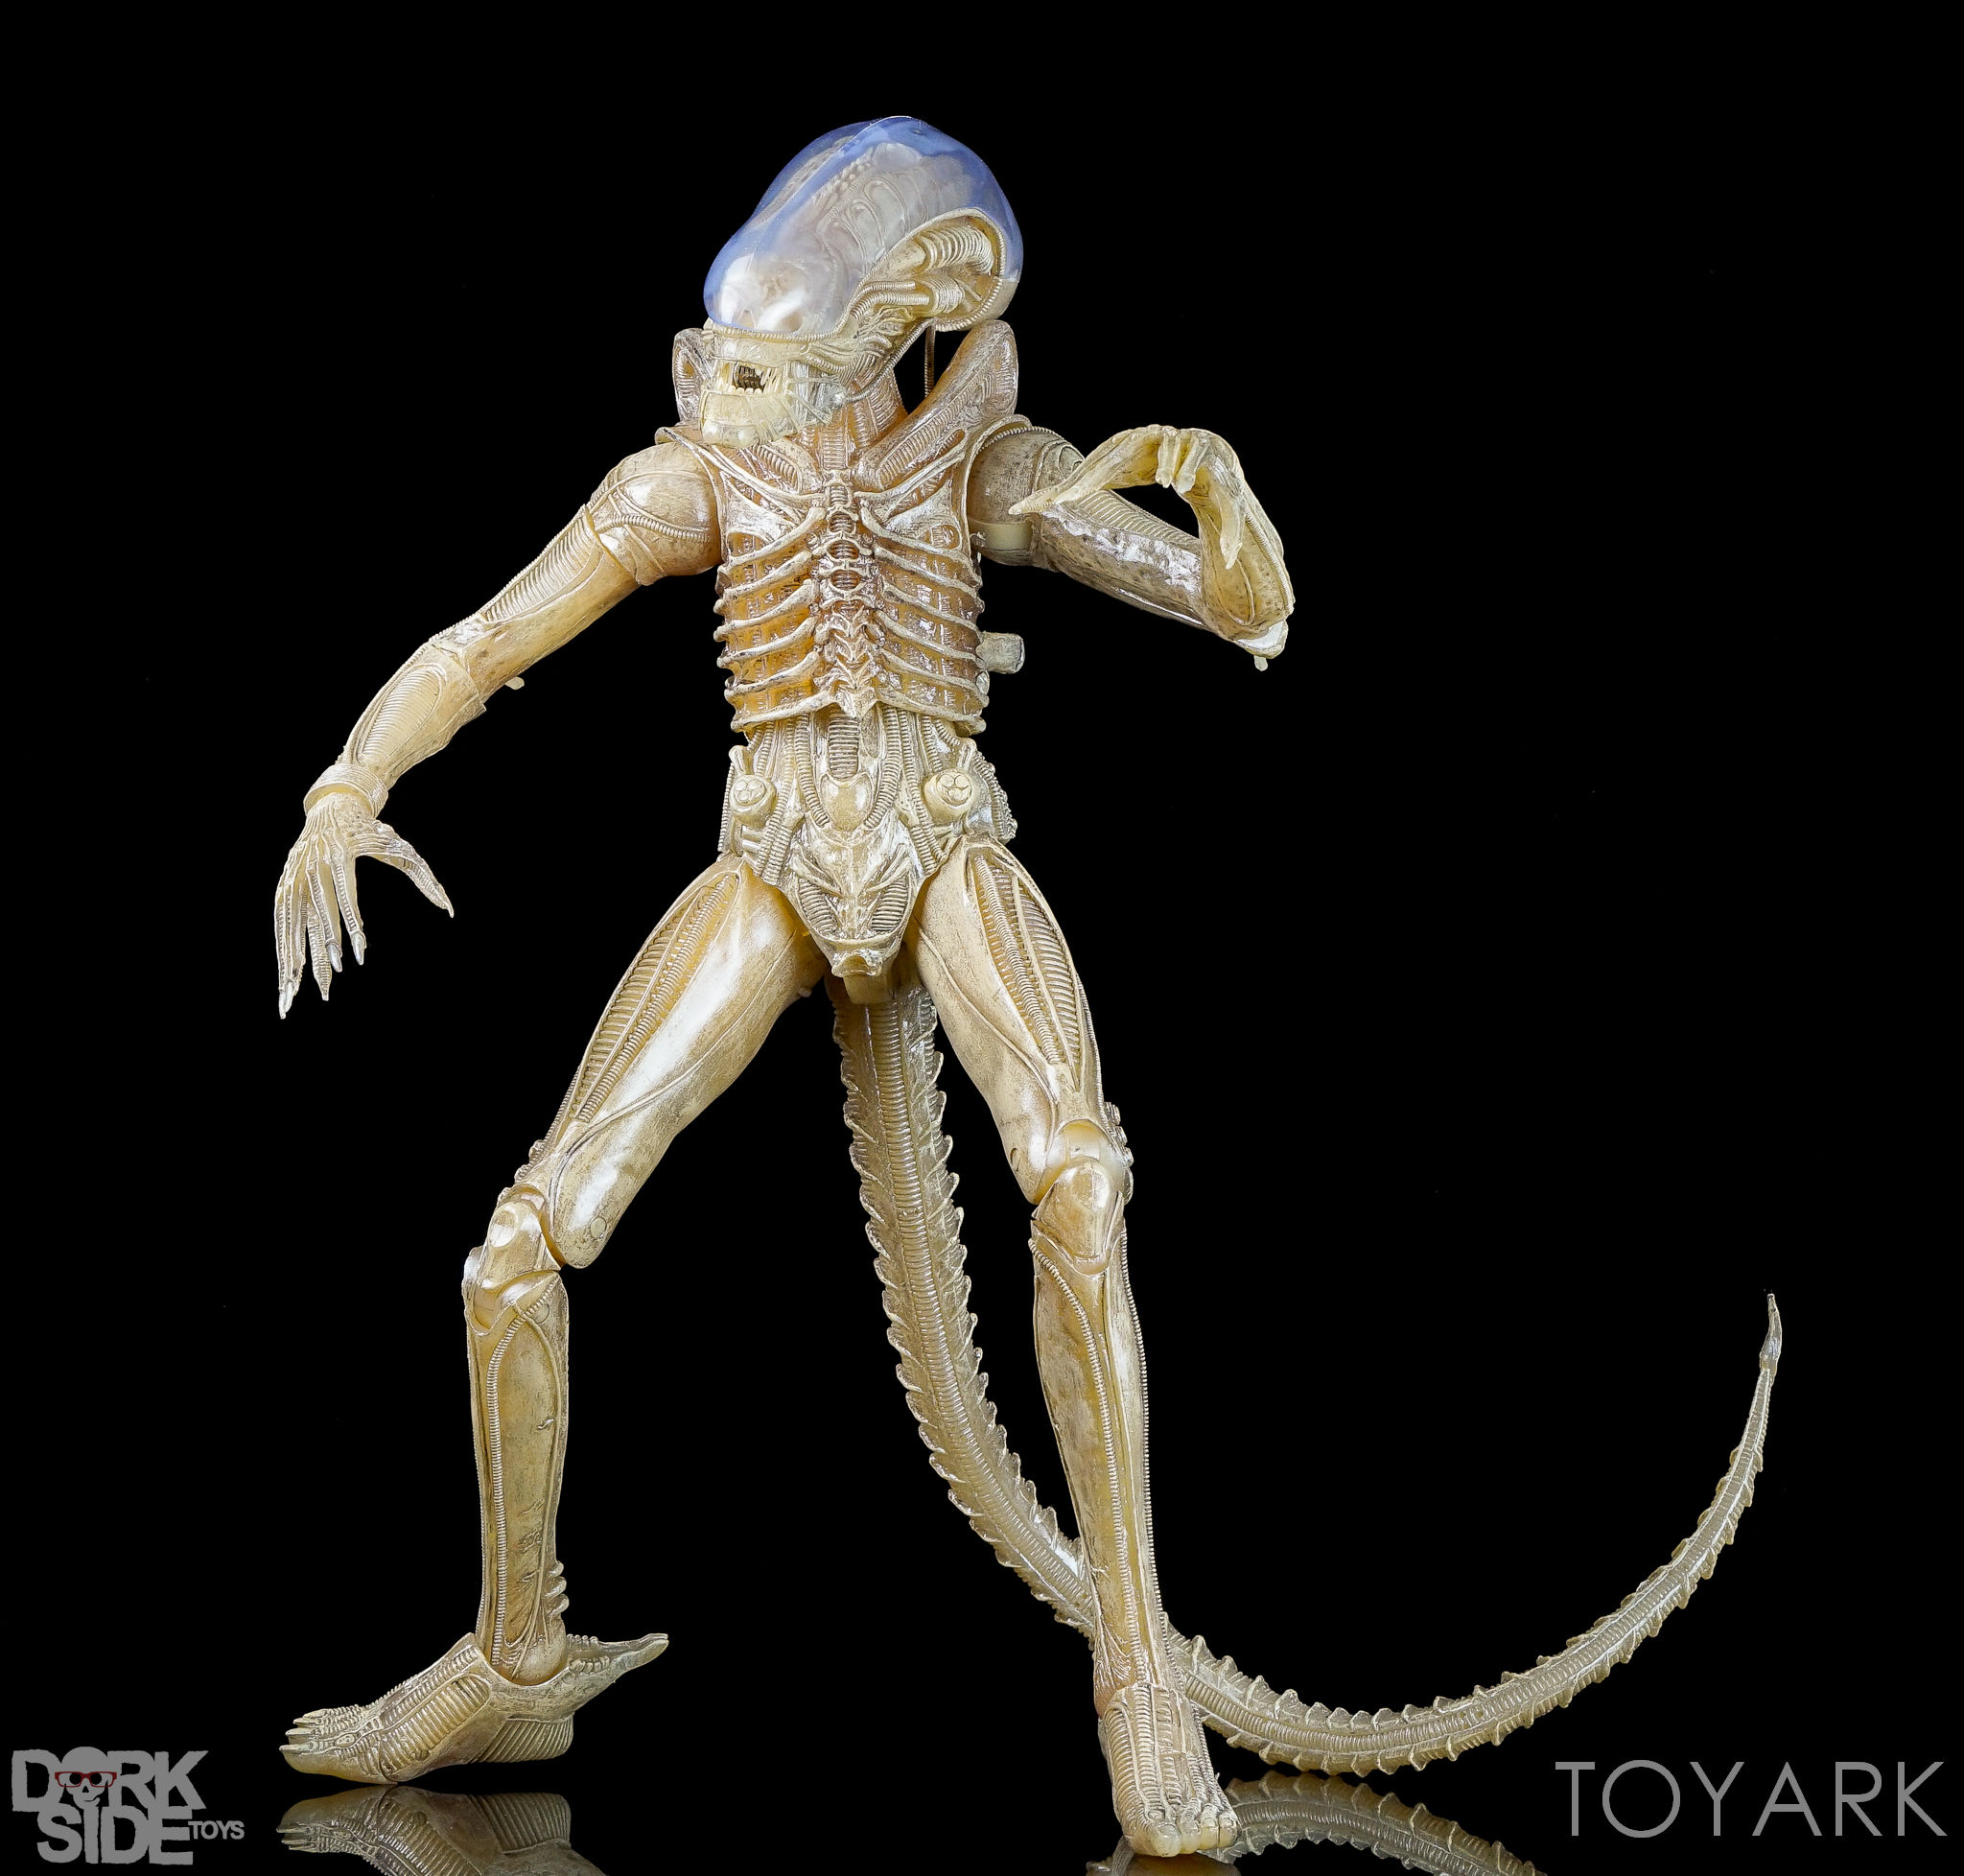 http://news.toyark.com/wp-content/uploads/sites/4/2016/10/NECA-Quarter-Scale-Concept-Alien-031.jpg